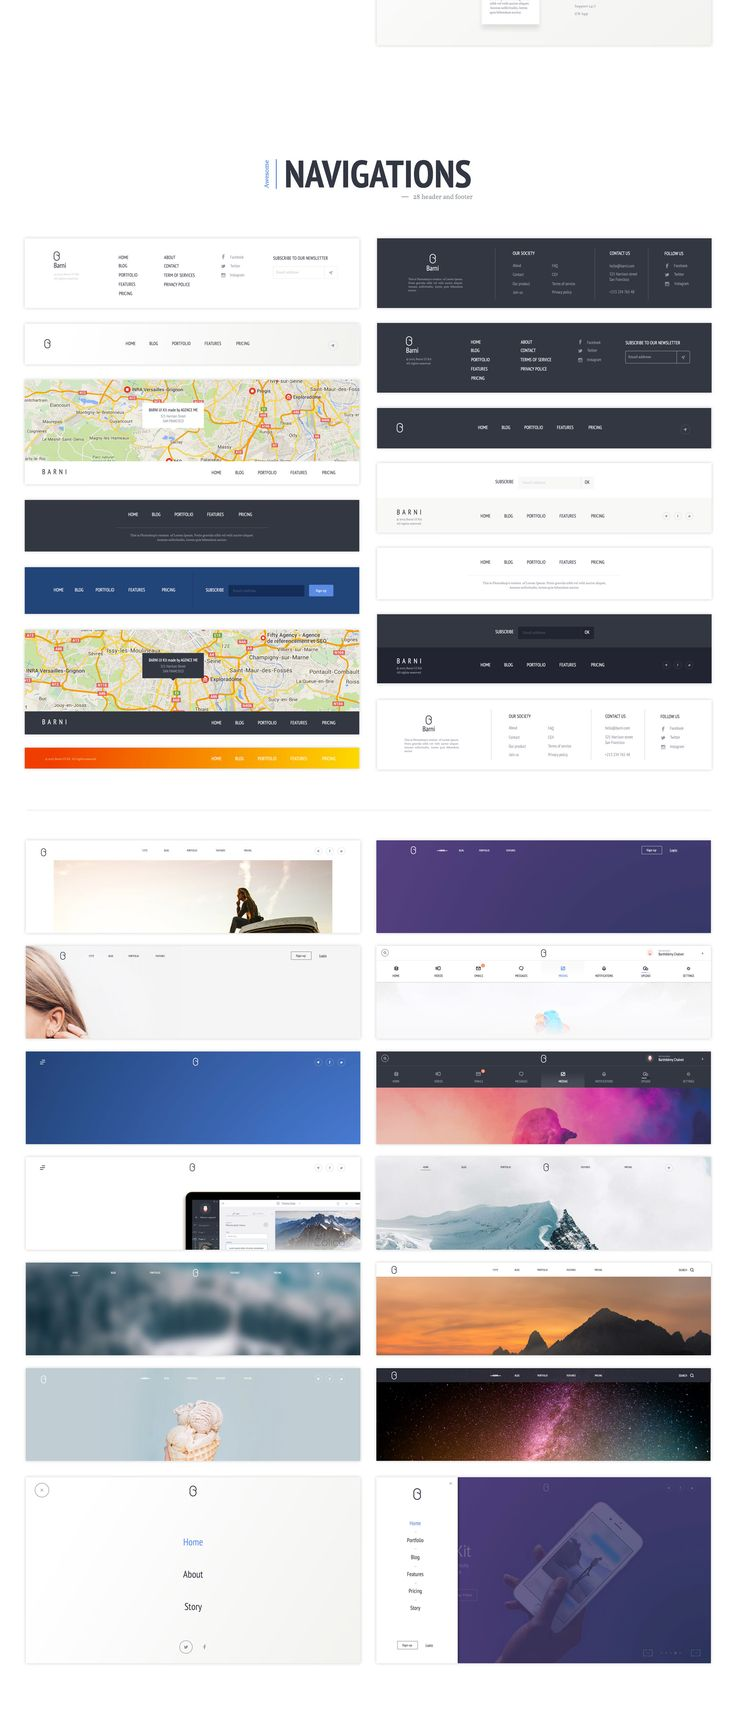 Barni for startup is the second part of this Barni UI series. It's a huge desktop UI kit coming with more than 140 components. Specially designed for startup purposes, Barni for startup includes exclusive components like testimonials, team, pricing, products and much more… also with common components (Sliders, Covers , Contents and Navigation). In total you'll receive more than 140+ different components and 6 landing pages.